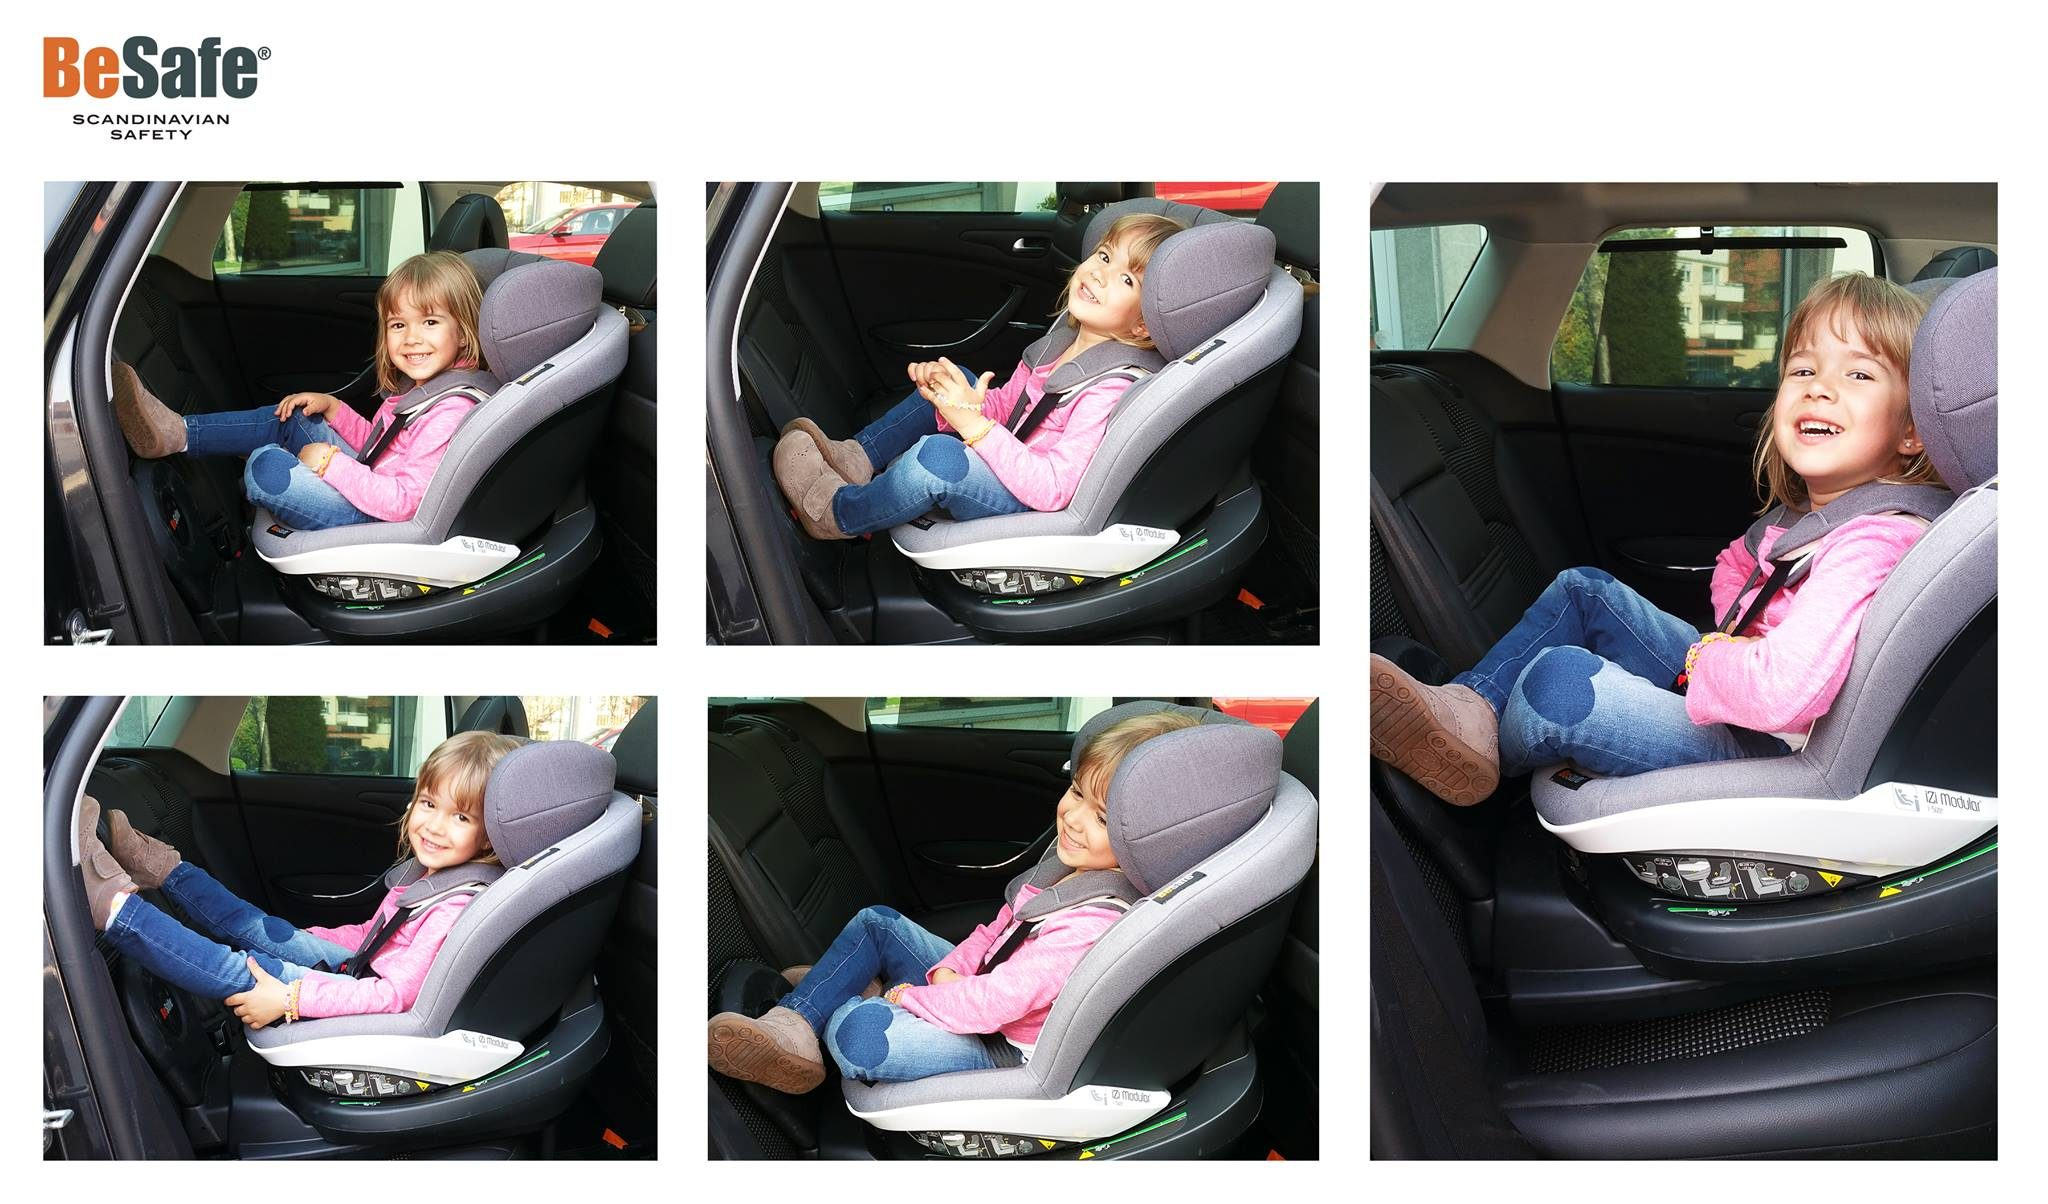 b2ee4f094 BeSafe - Misconceptions about rear facing car seats